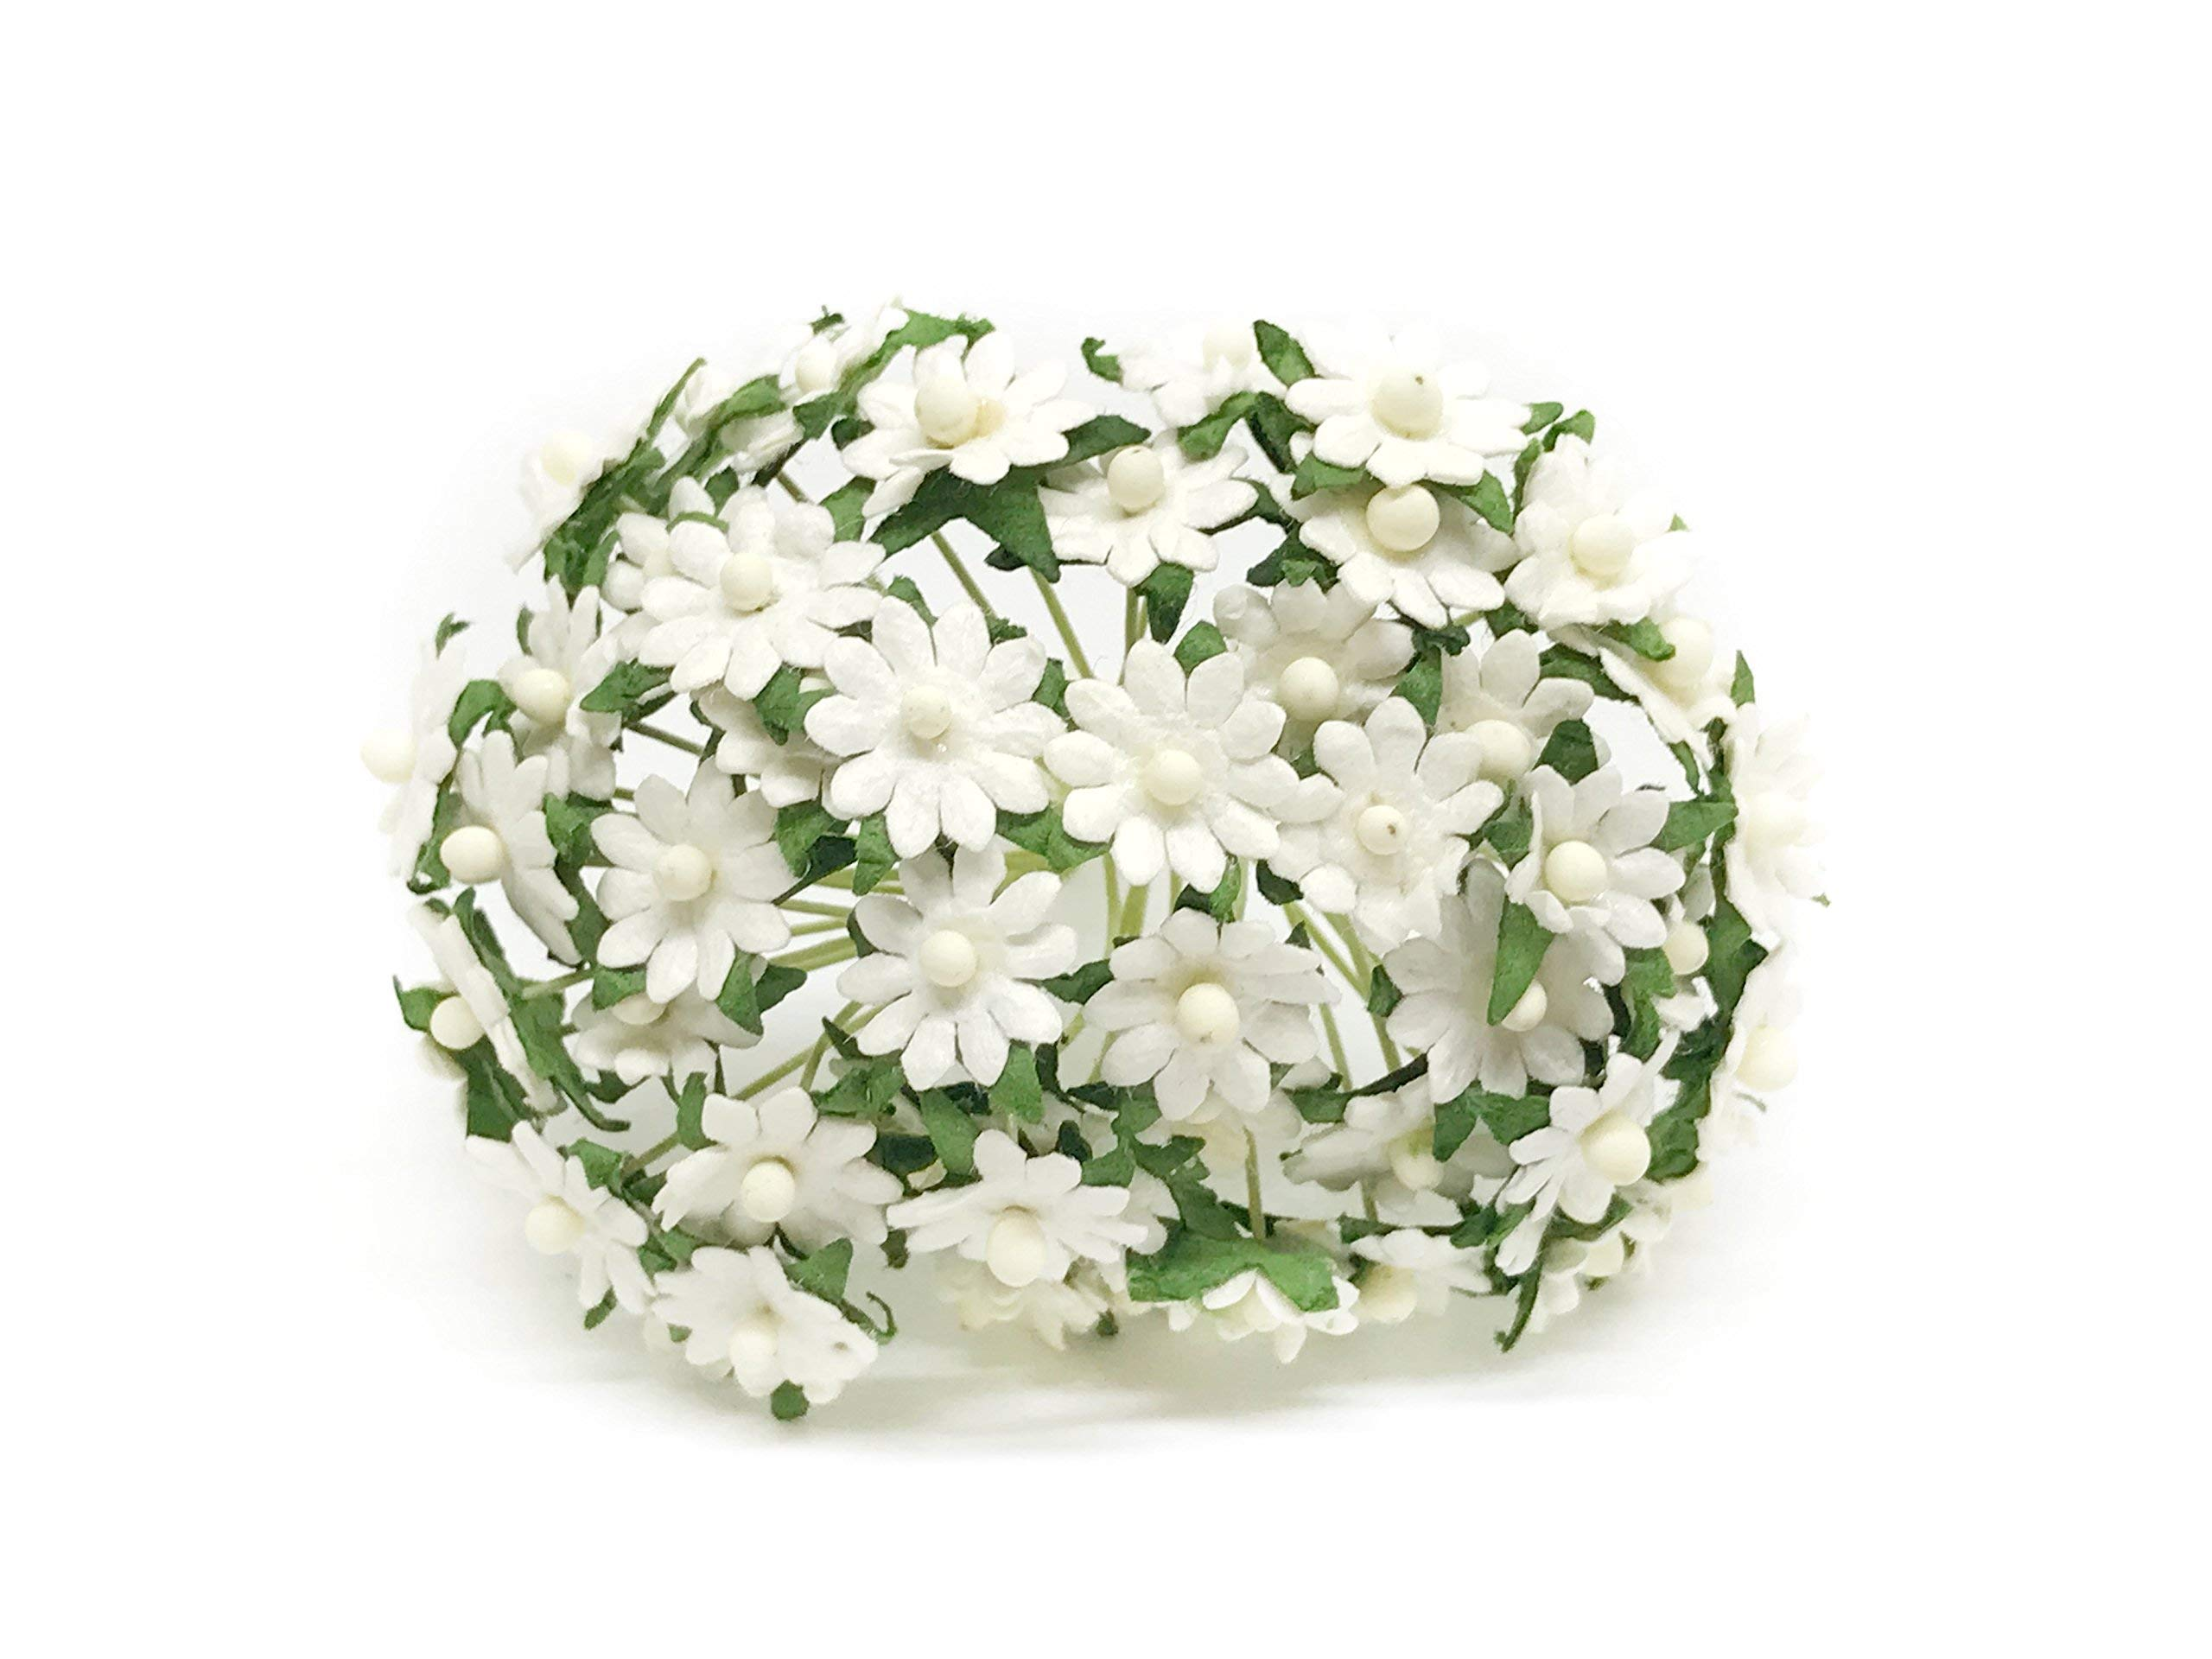 1cm-White-Paper-Daisies-Mulberry-Paper-Flowers-Miniature-Flowers-For-Crafts-Mulberry-Paper-Daisy-Paper-Flower-Artificial-Flowers-50-Pieces